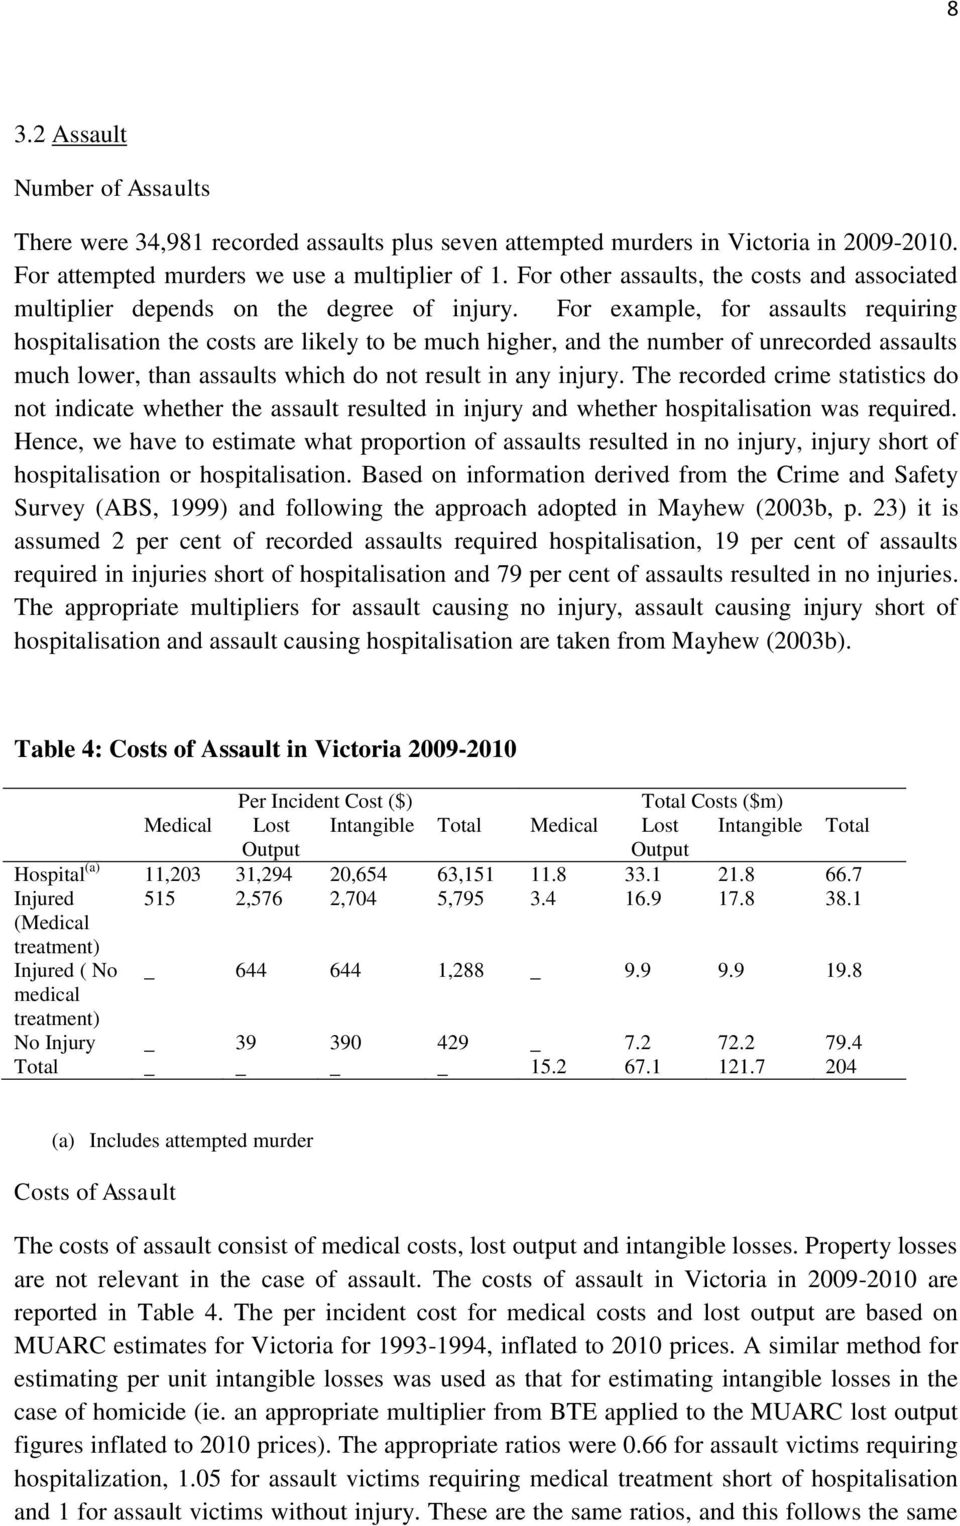 For example, for assaults requiring hospitalisation the costs are likely to be much higher, and the number of unrecorded assaults much lower, than assaults which do not result in any injury.